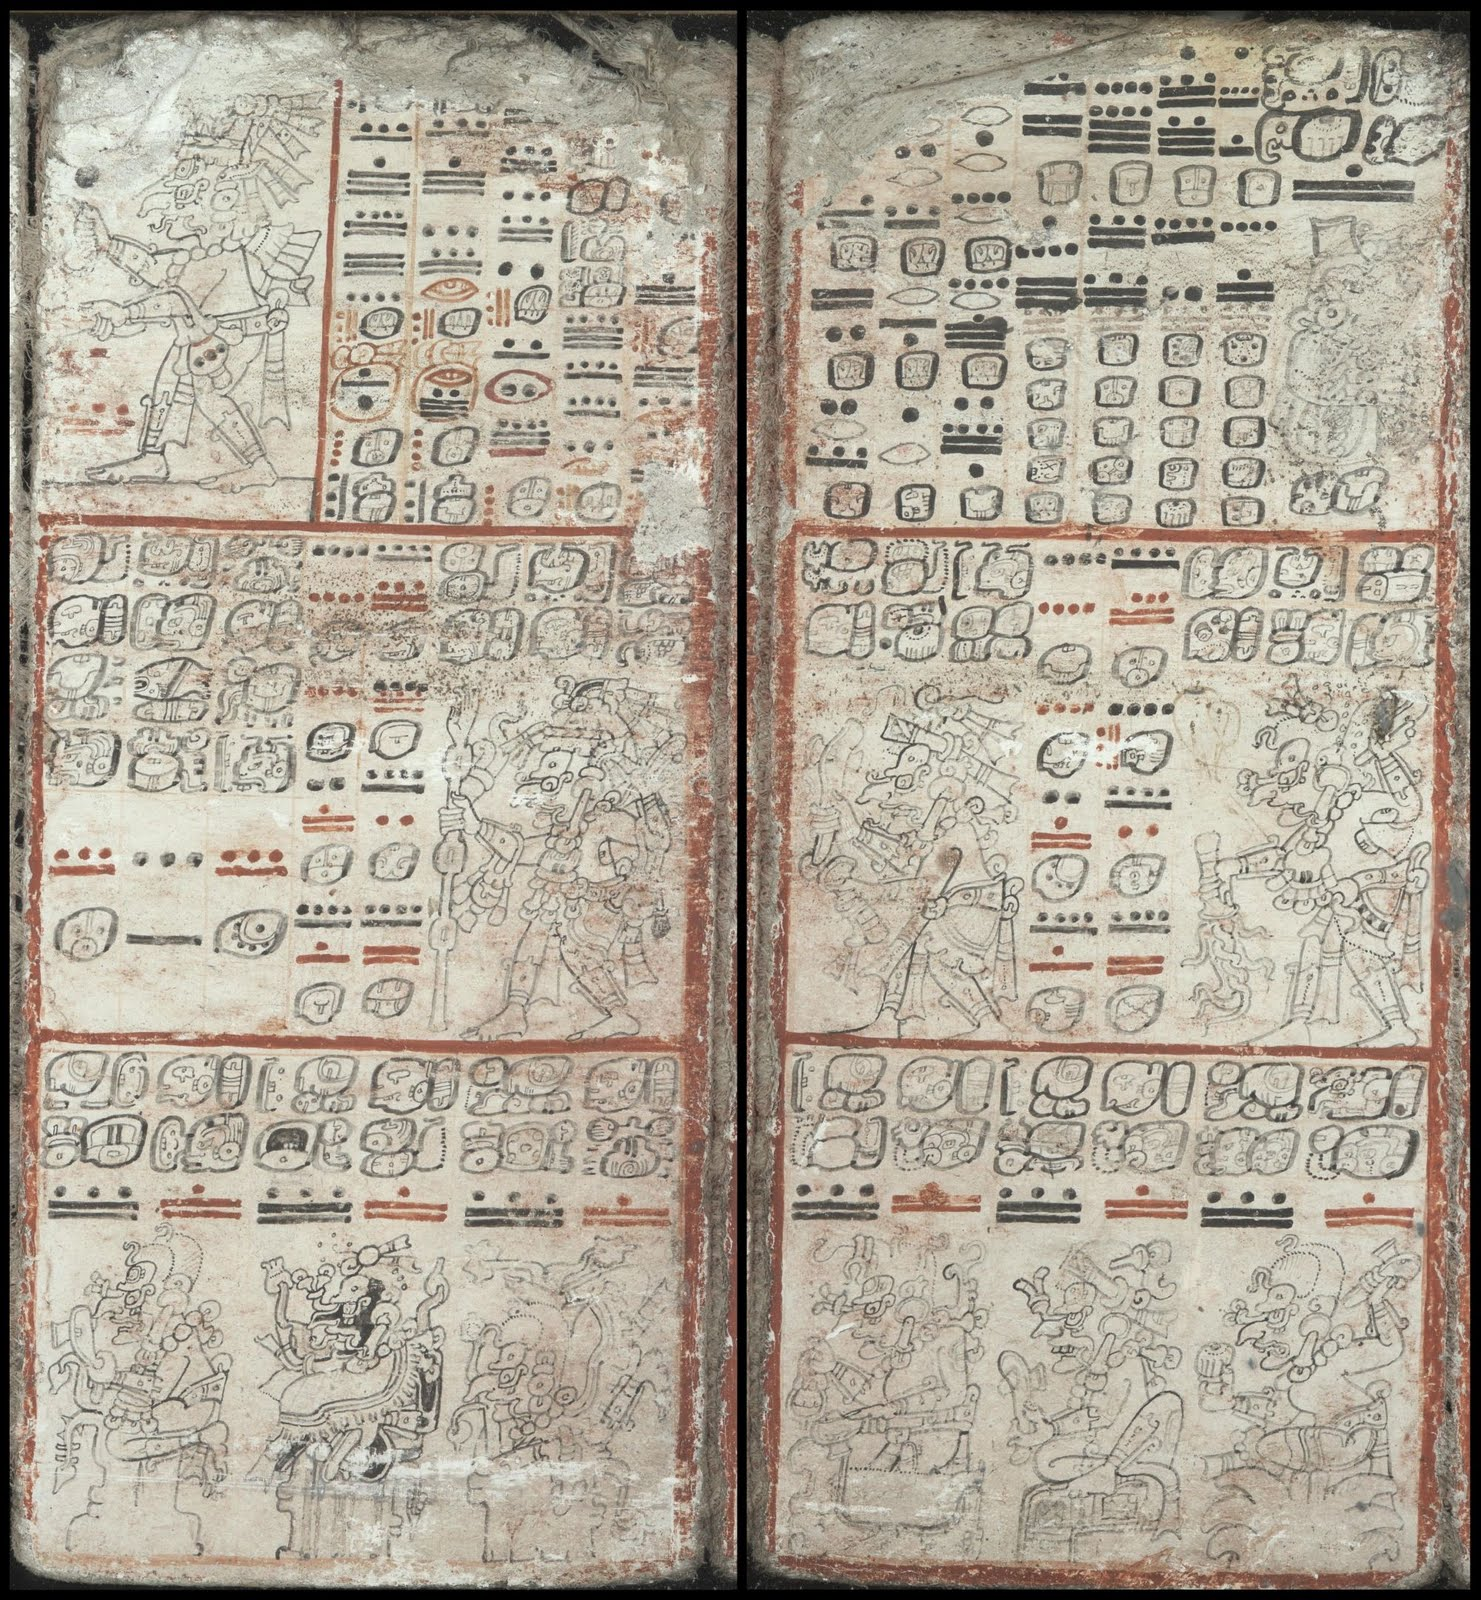 Mayan pictographs - Dresden Codex